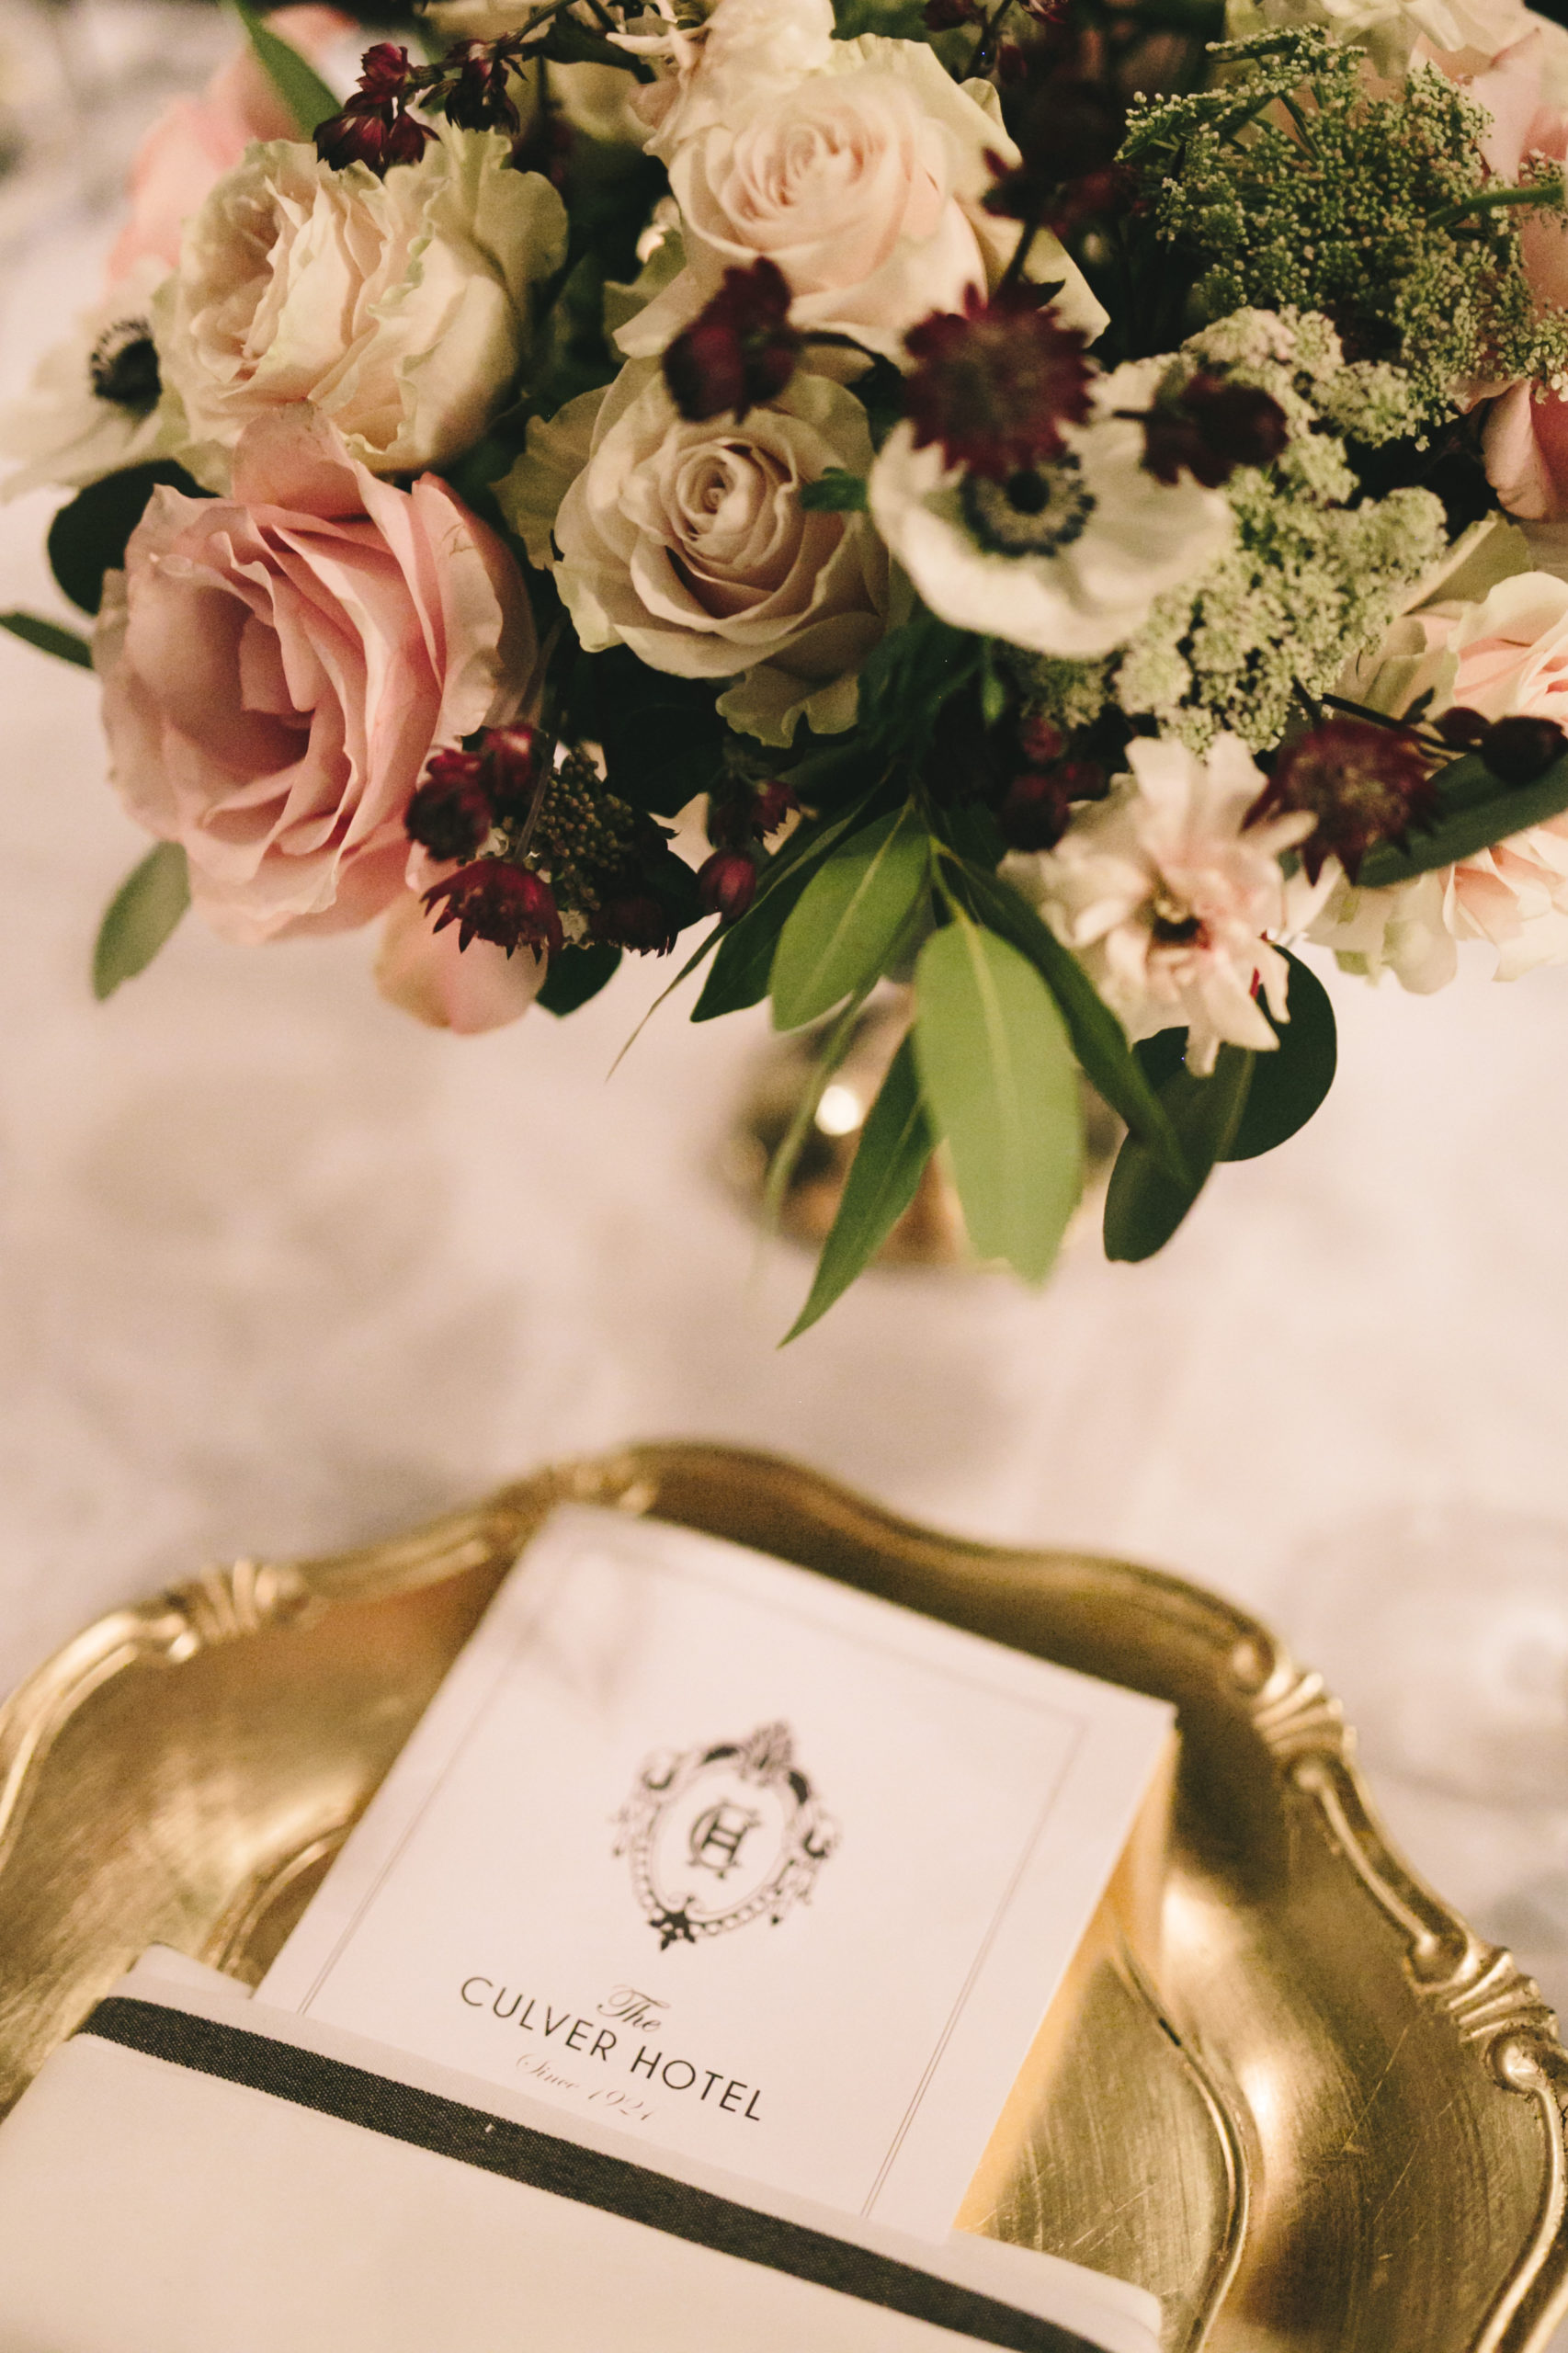 Gold charger table setting at wedding